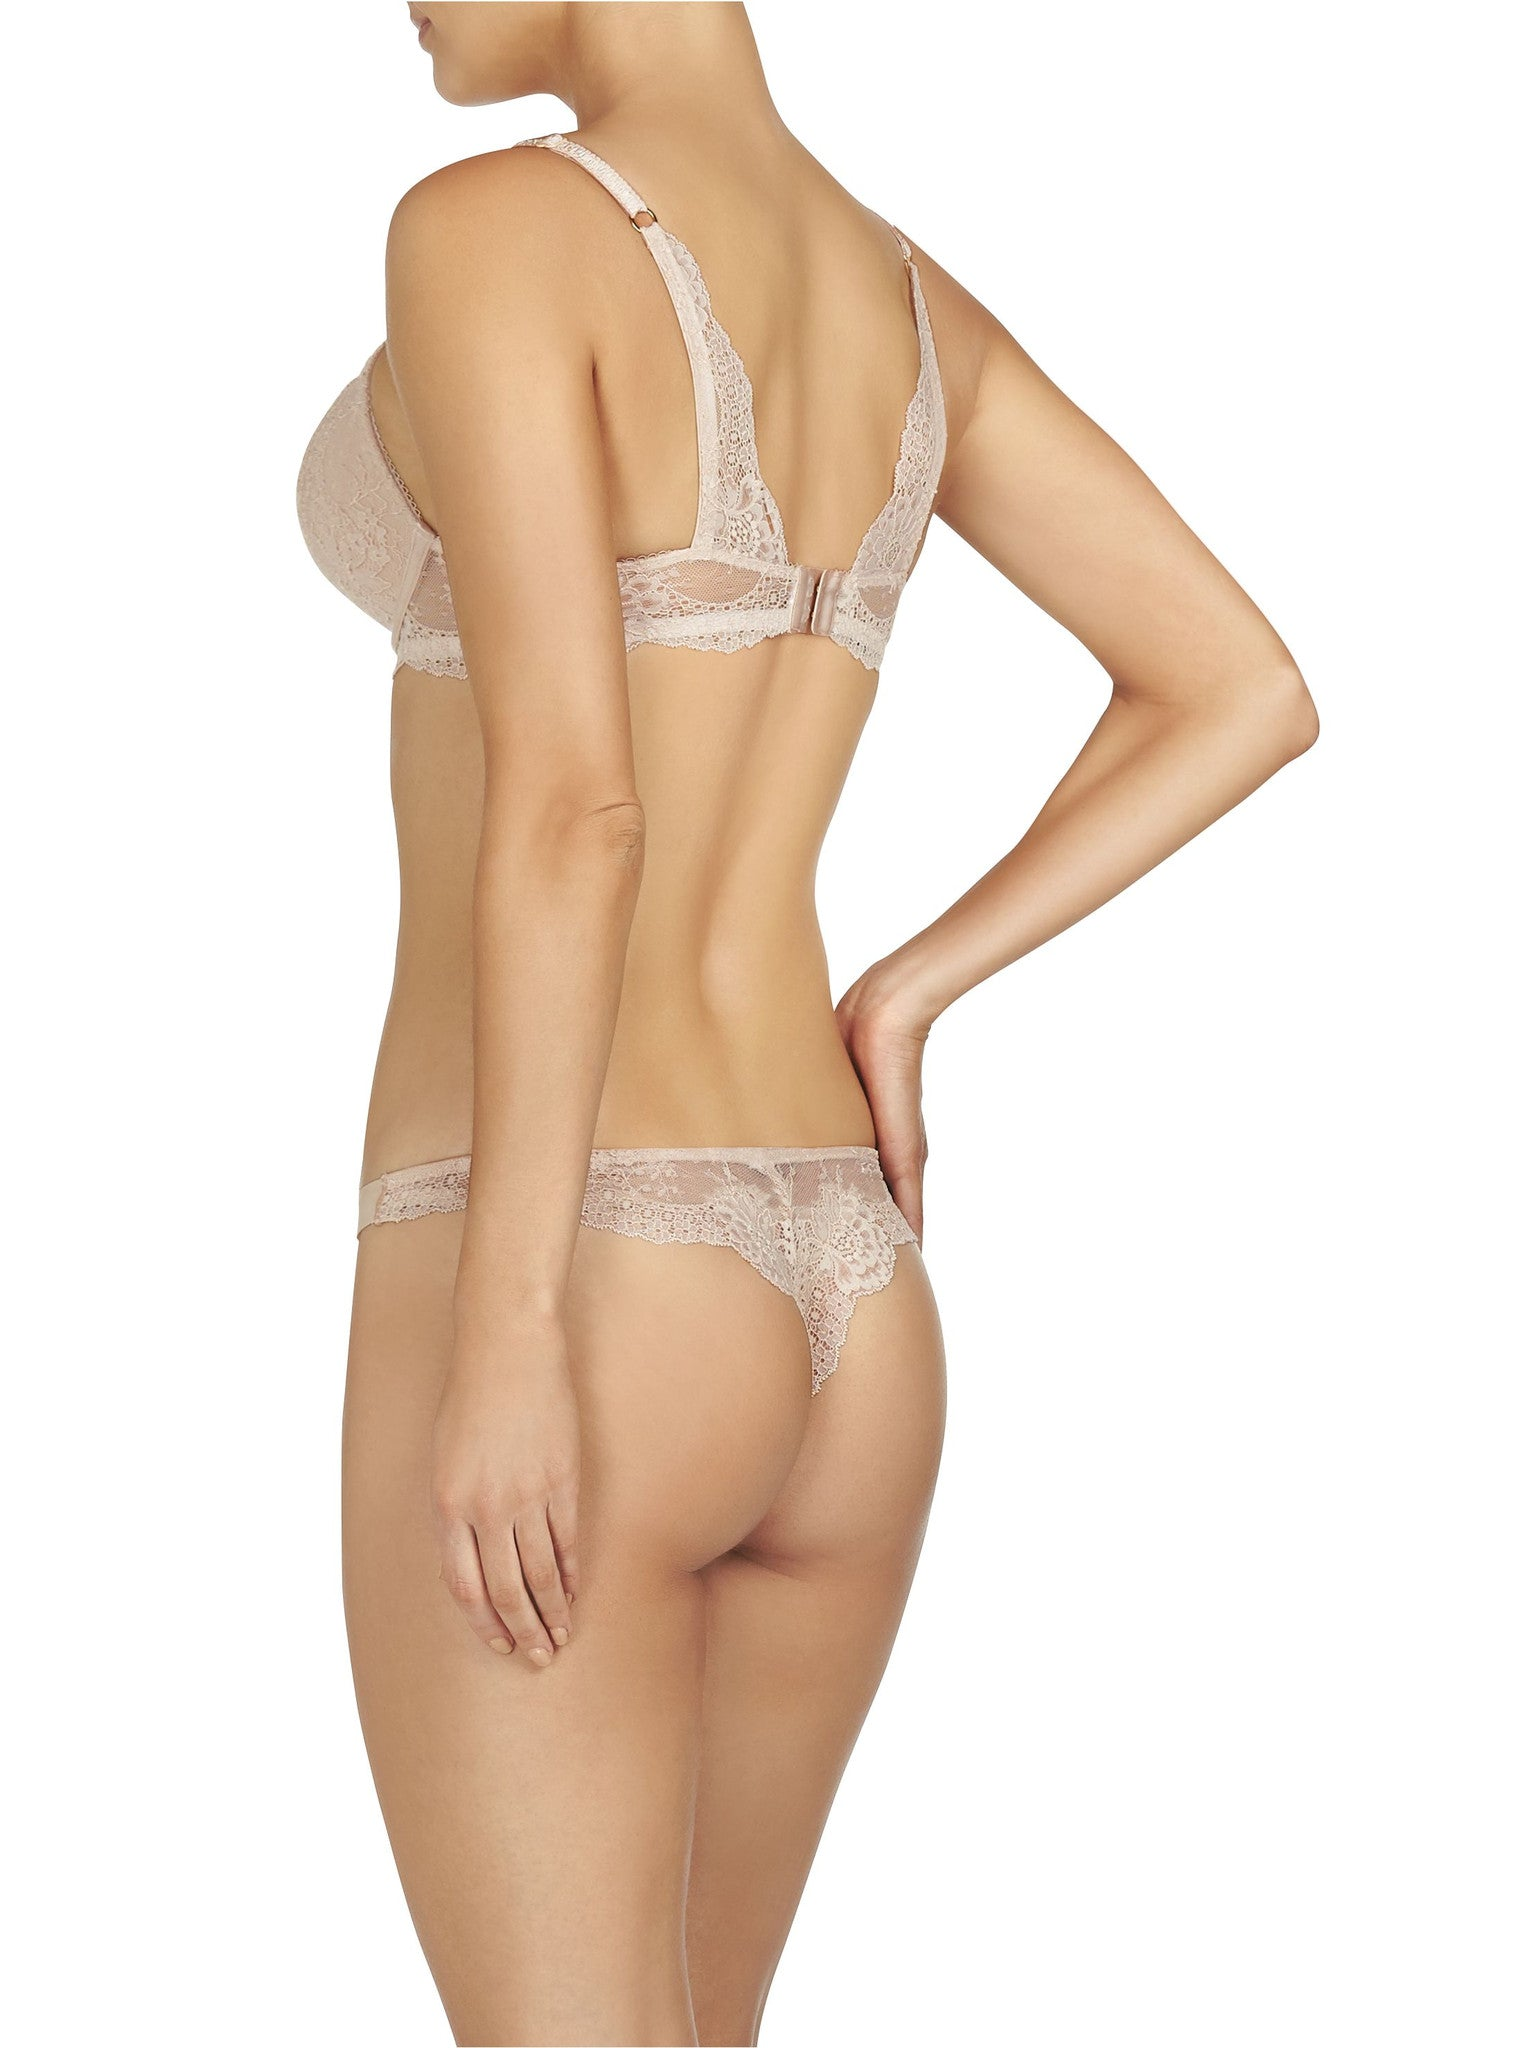 Stella McCartney Lingerie New Stella Smooth & Lace Thong - Knickers & Pearls Boutique - 1